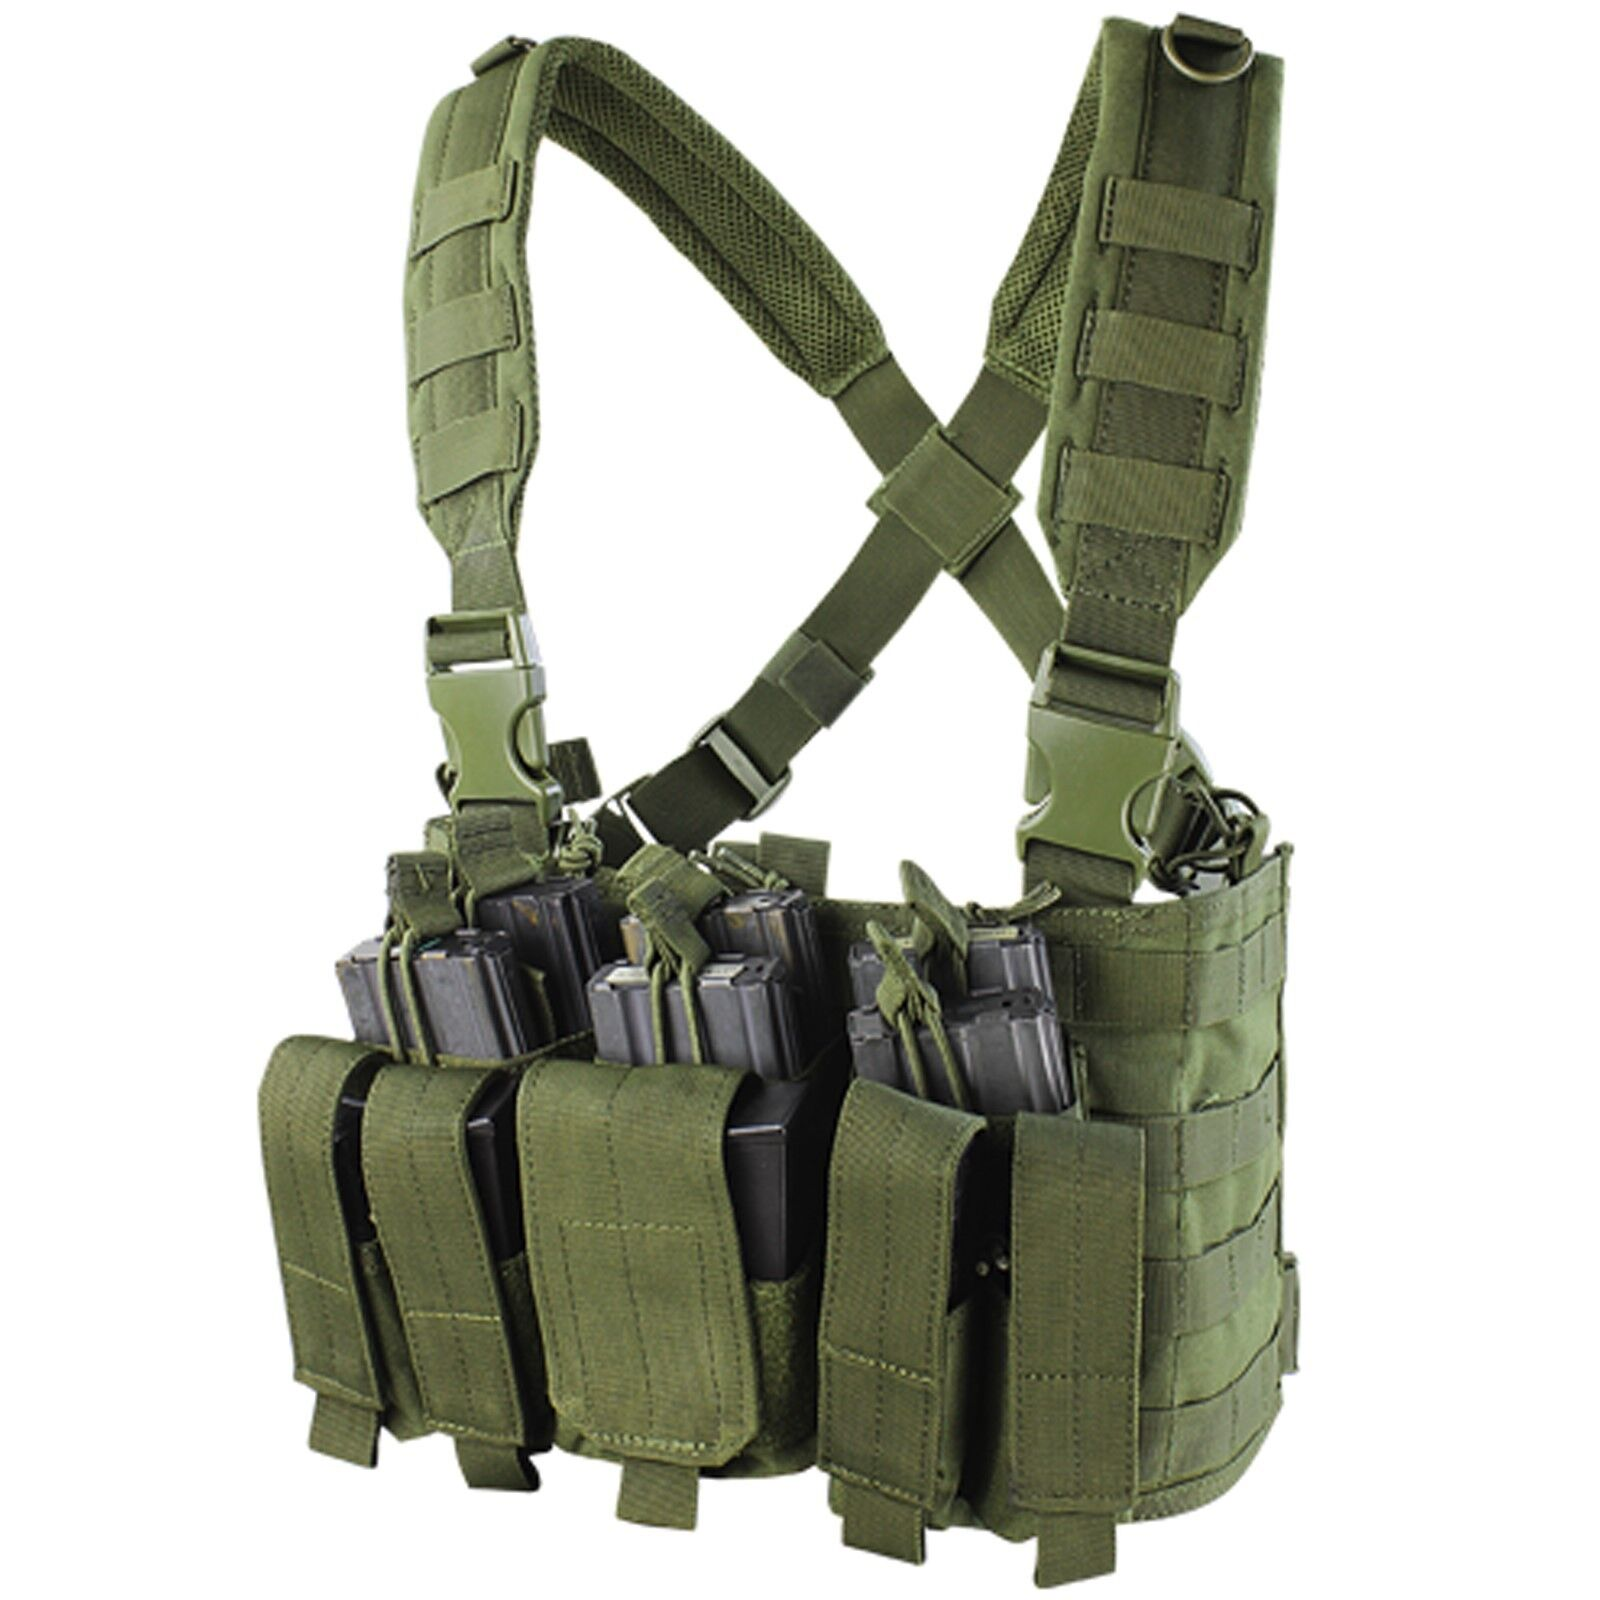 Condor MCR5 OD Green MOLLE PALS  Rifle Magazine Pouch Rapid Assault Chest Rig  new listing